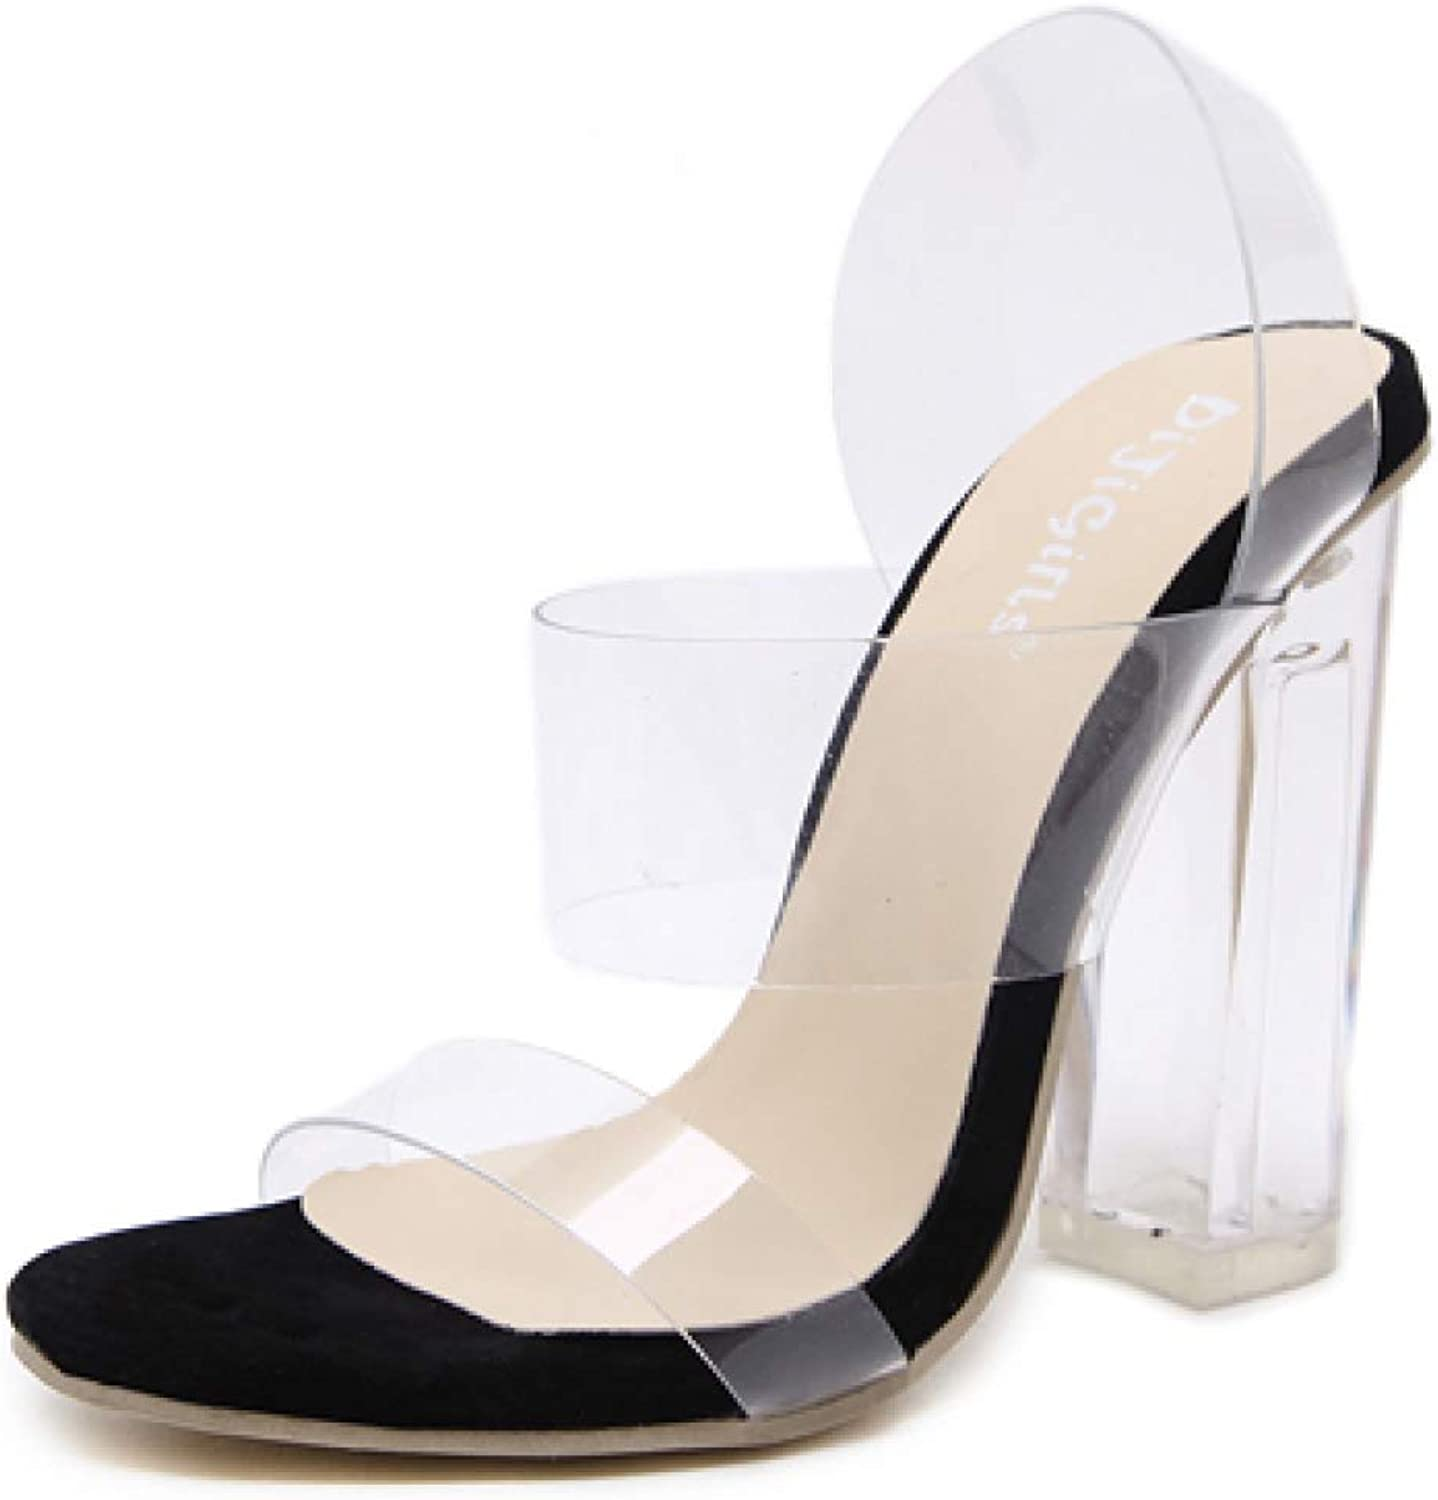 T-JULY Women's Sandal shoes Ladies Sexy Transparent Peep Toe shoes Clear Square Heels Casual shoes for Summer